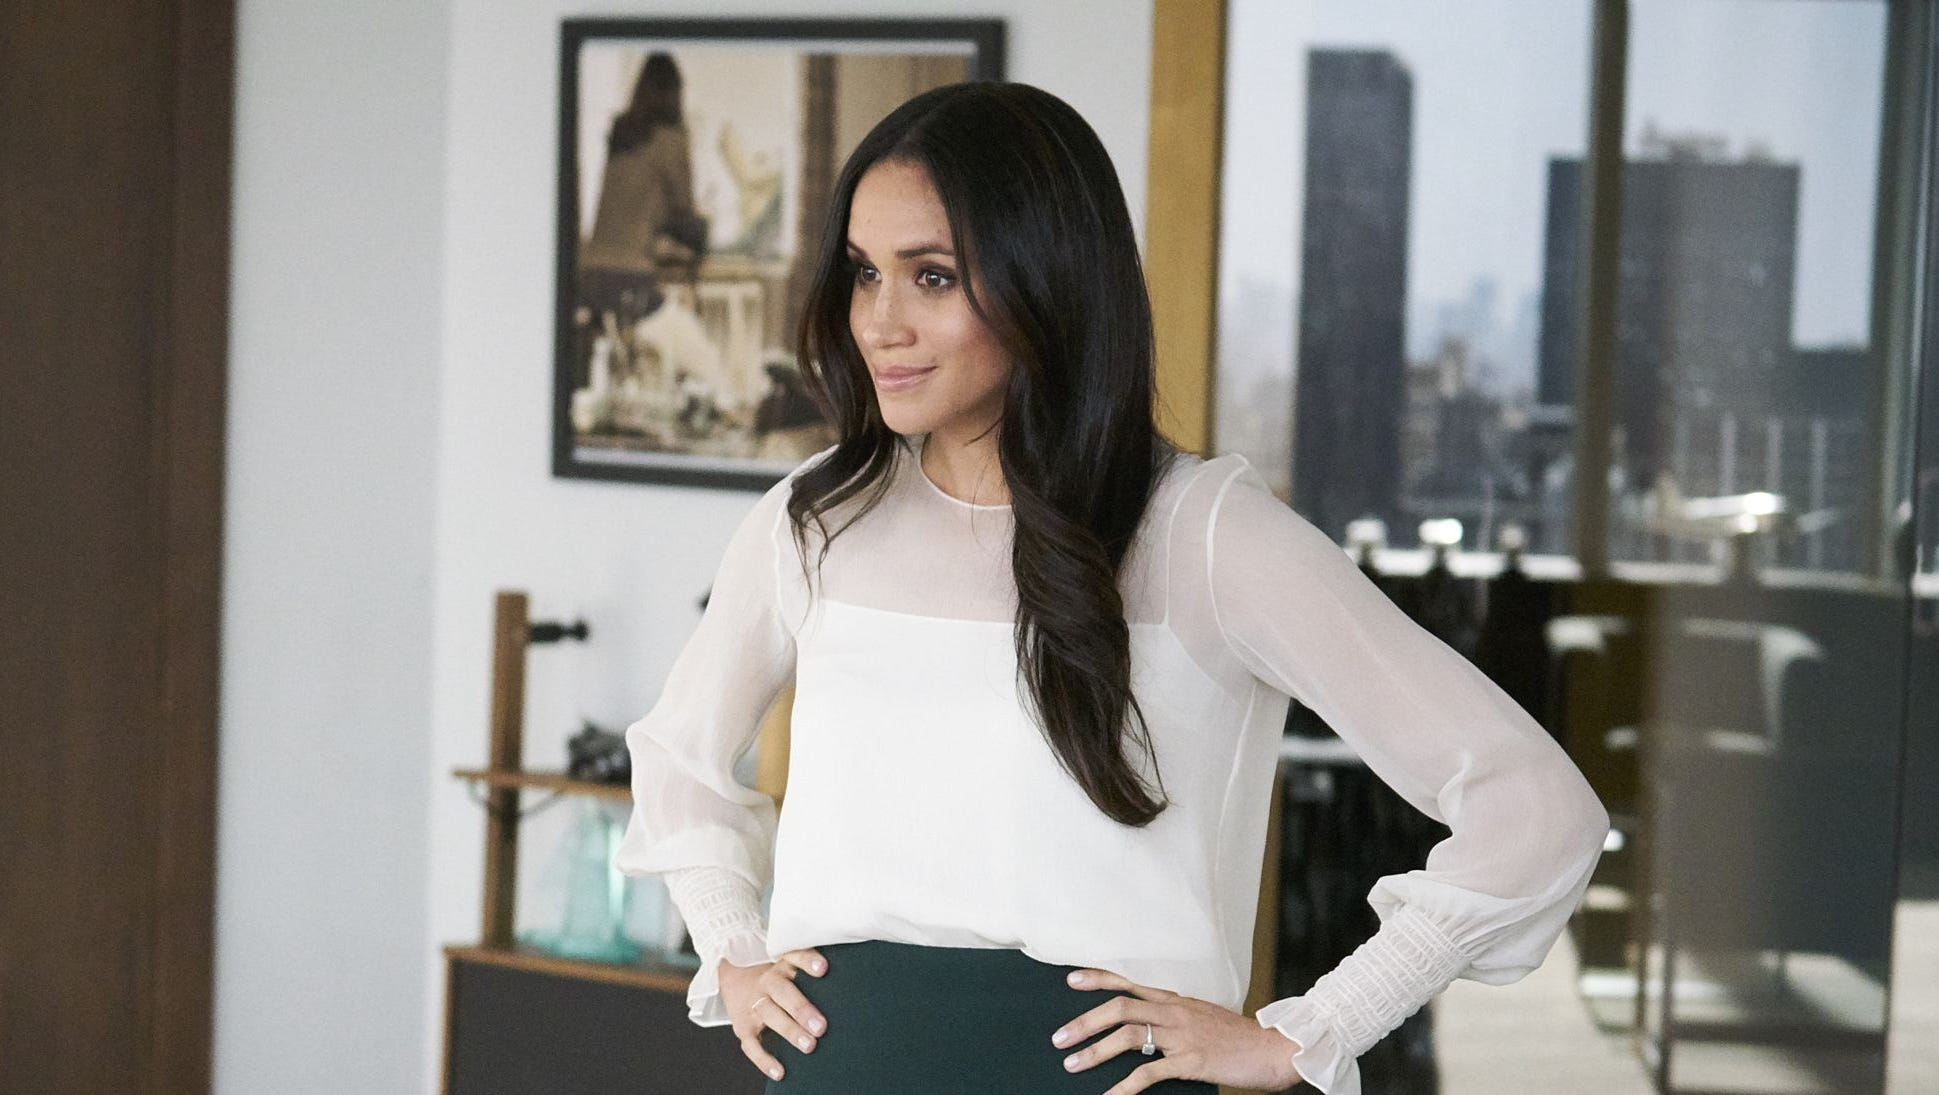 meghan markle s final suits a new job and a non royal wedding meghan markle s final suits a new